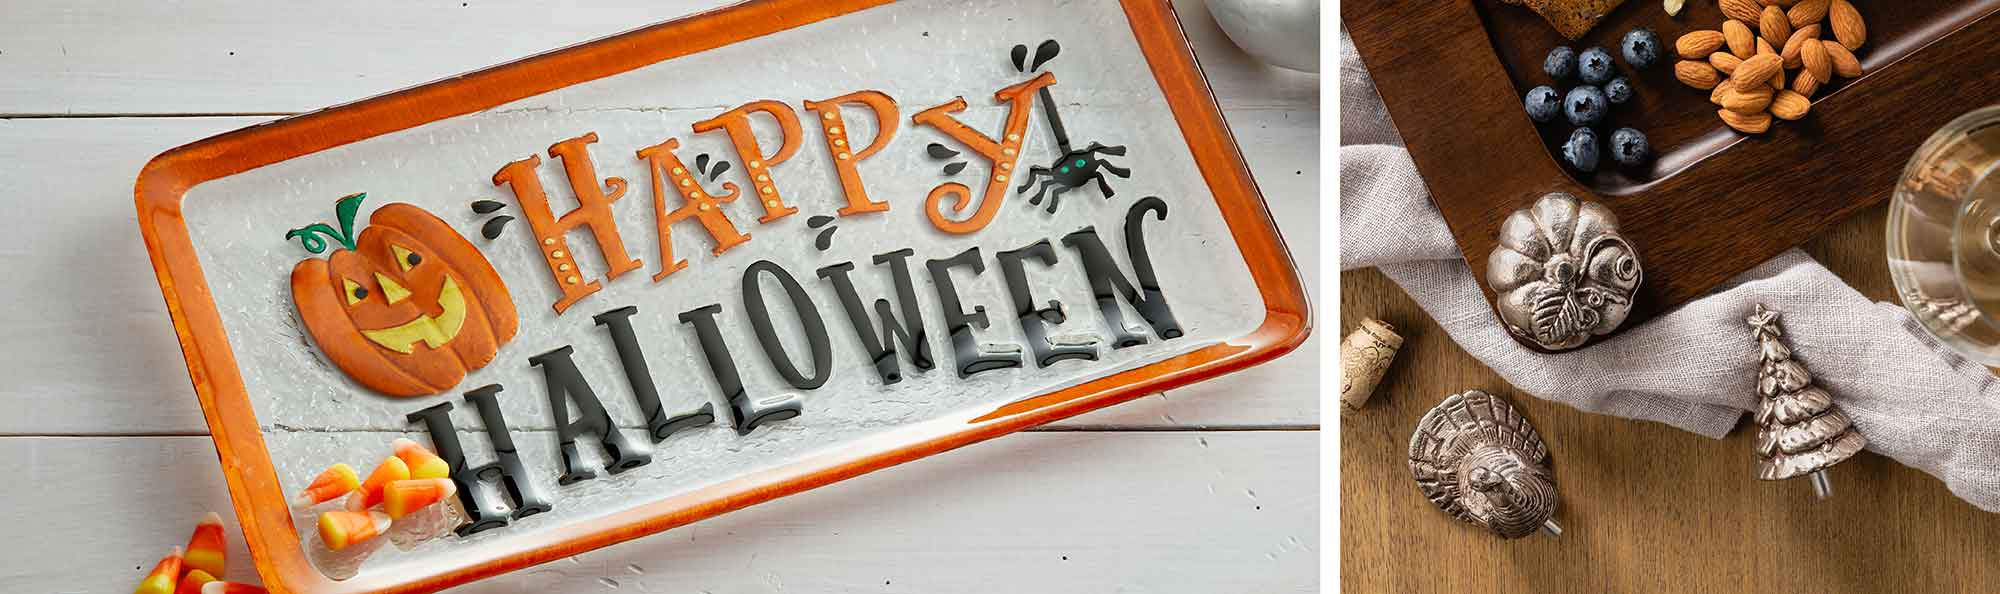 halloween themed fusion glass and metal pegs for a wooden tray